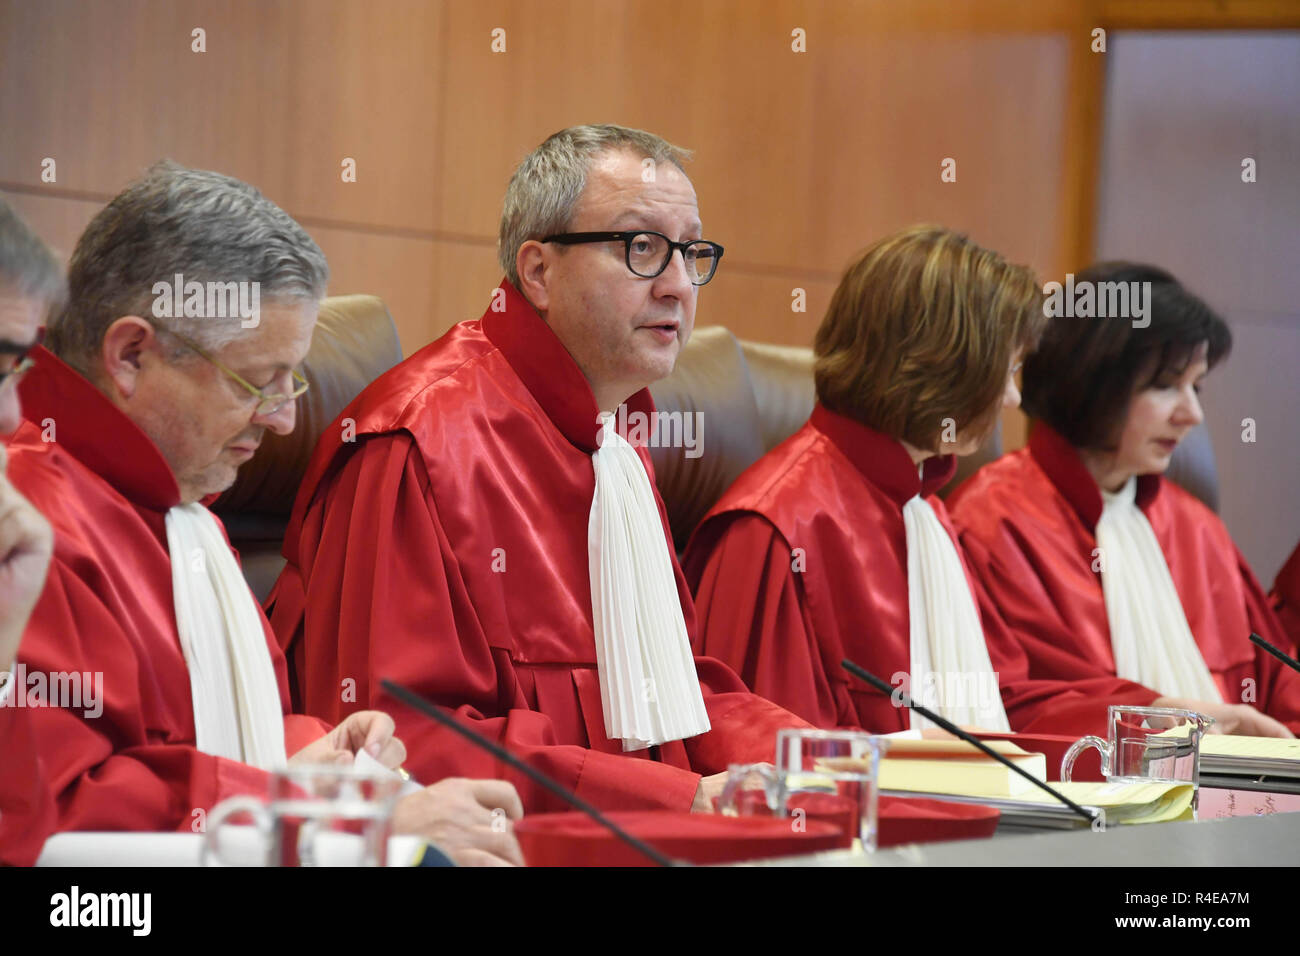 Karlsruhe, Germany. 27th Nov, 2018. The Second Senate at the Federal Constitutional Court, (l-r) Peter M. Huber, Chairman Andreas Voßkuhle, Monika Hermanns, Sibylle Kessal-Wulf, opens the oral proceedings in the matter of the 'European Banking Union'. This concerns central banking supervision in the euro area. Credit: Uli Deck/dpa/Alamy Live News - Stock Image